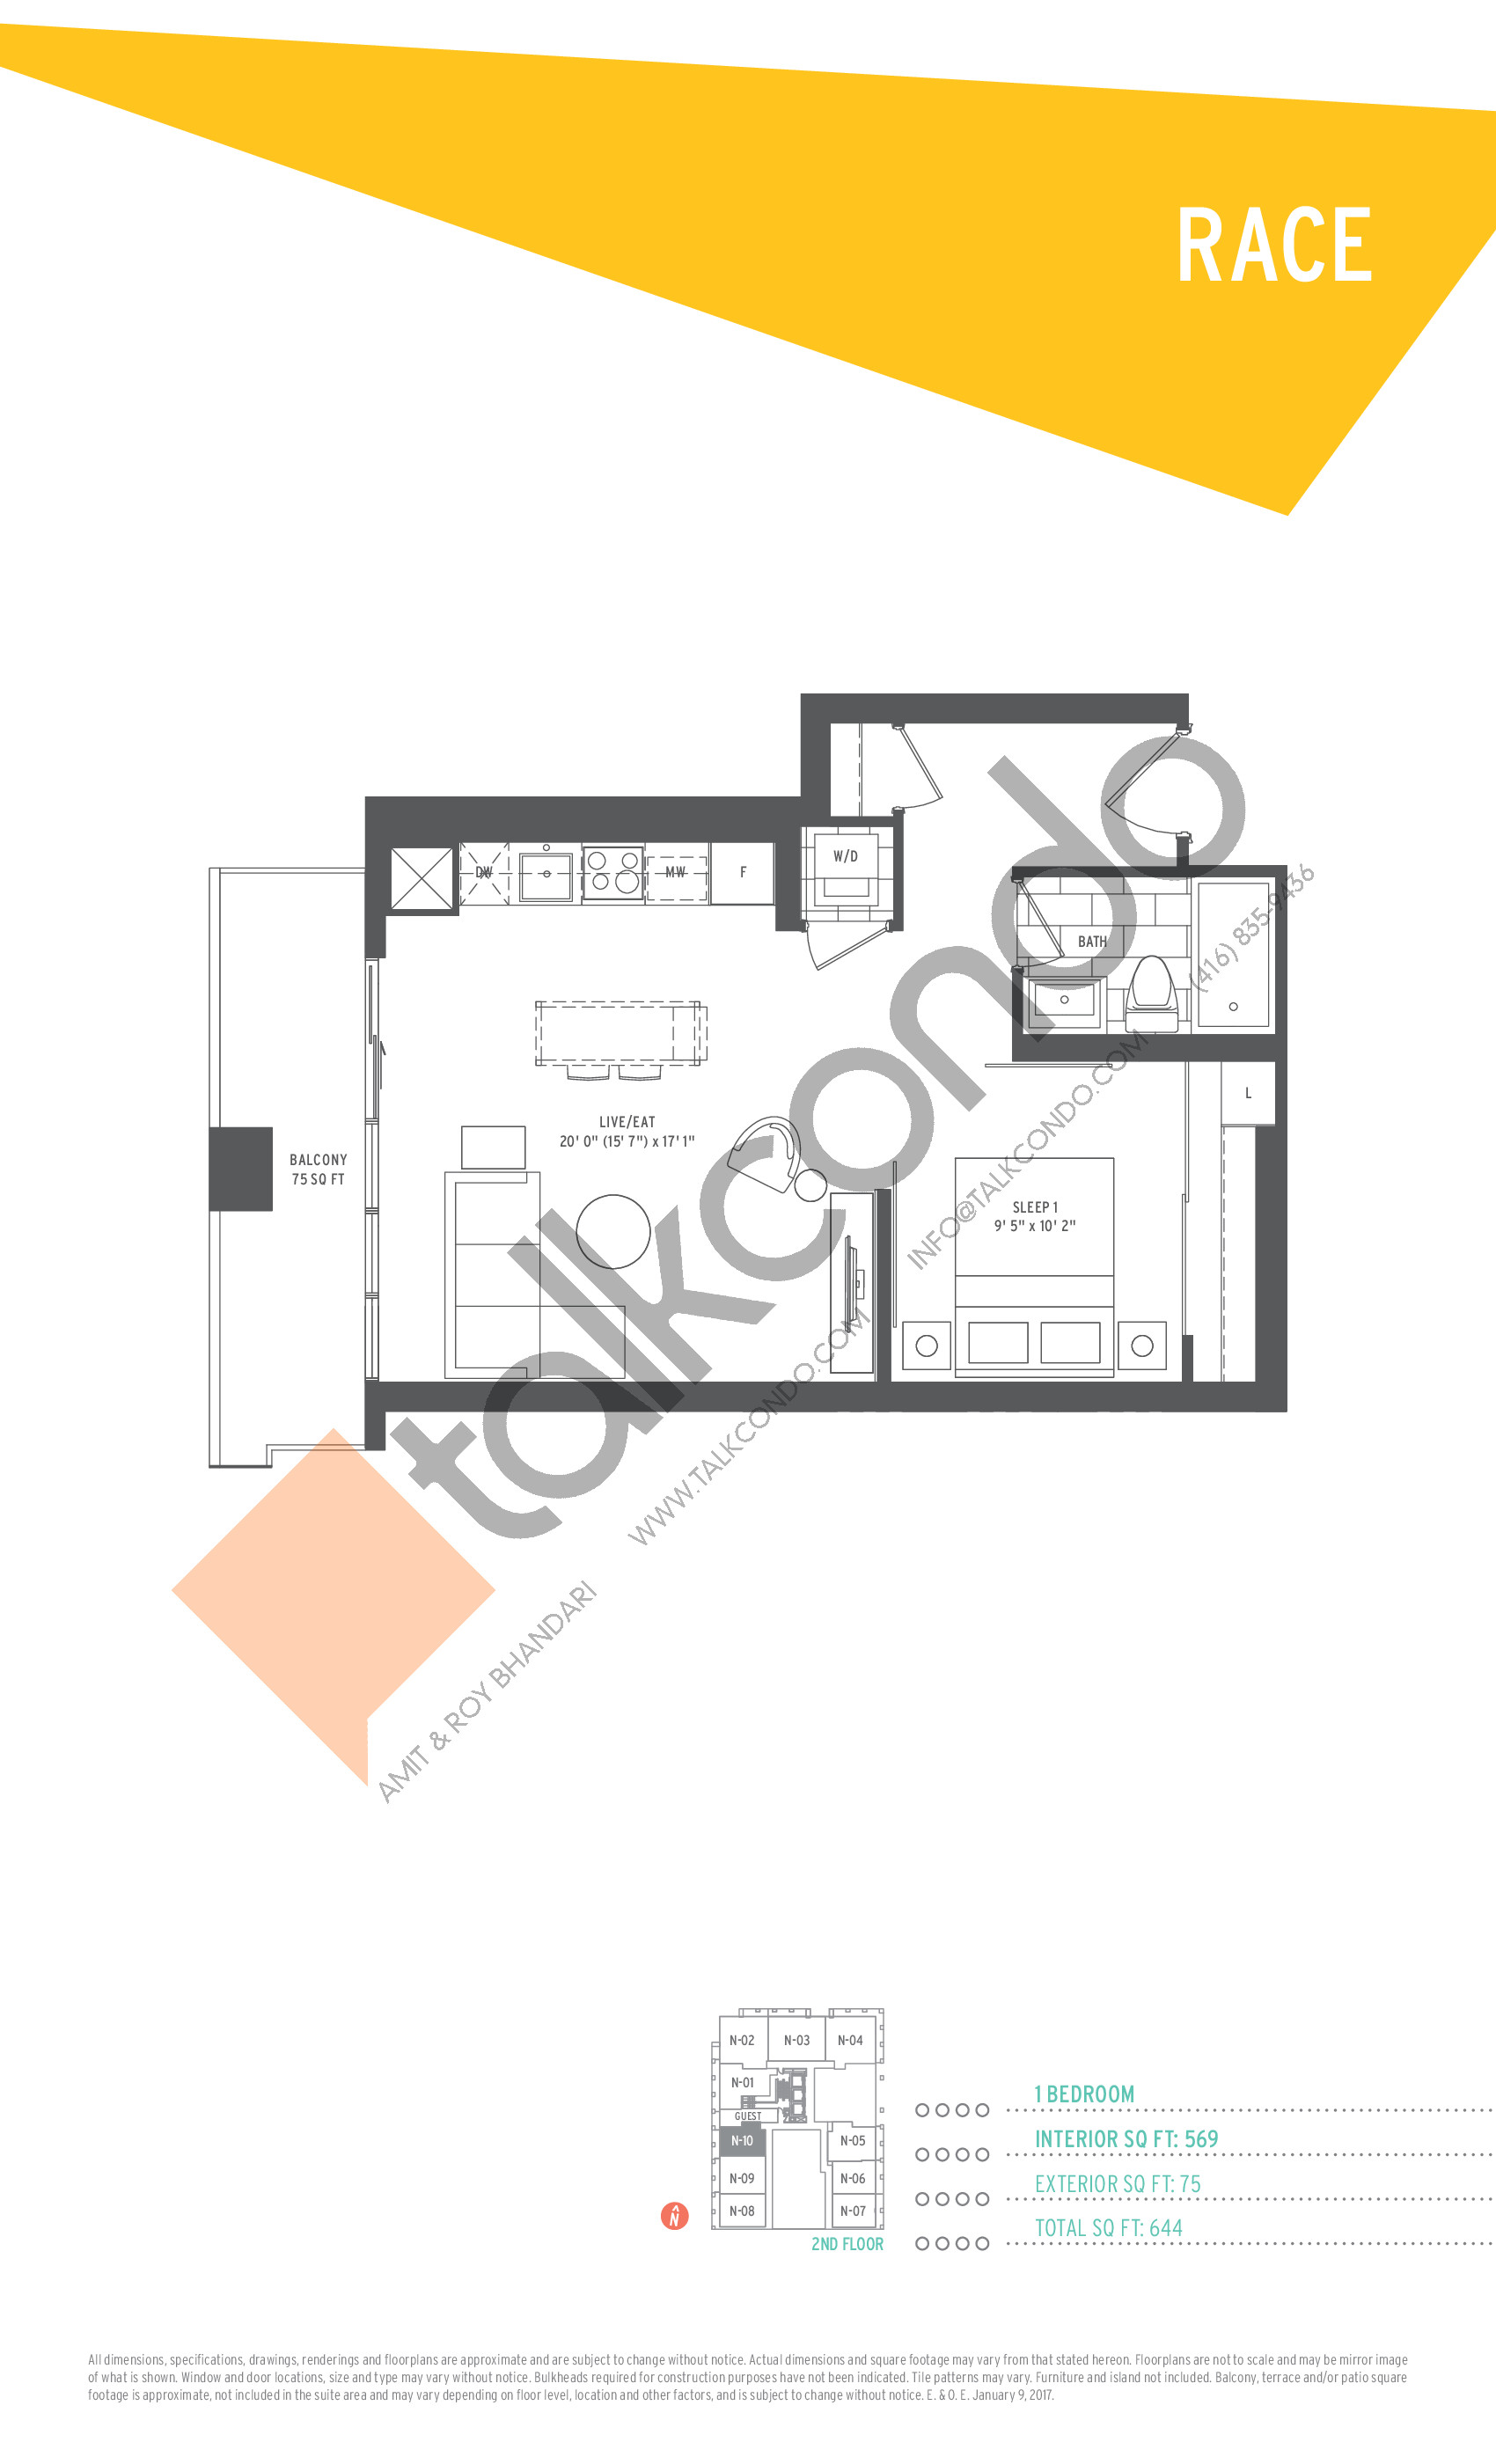 Race Floor Plan at SuperSonic Condos - 569 sq.ft